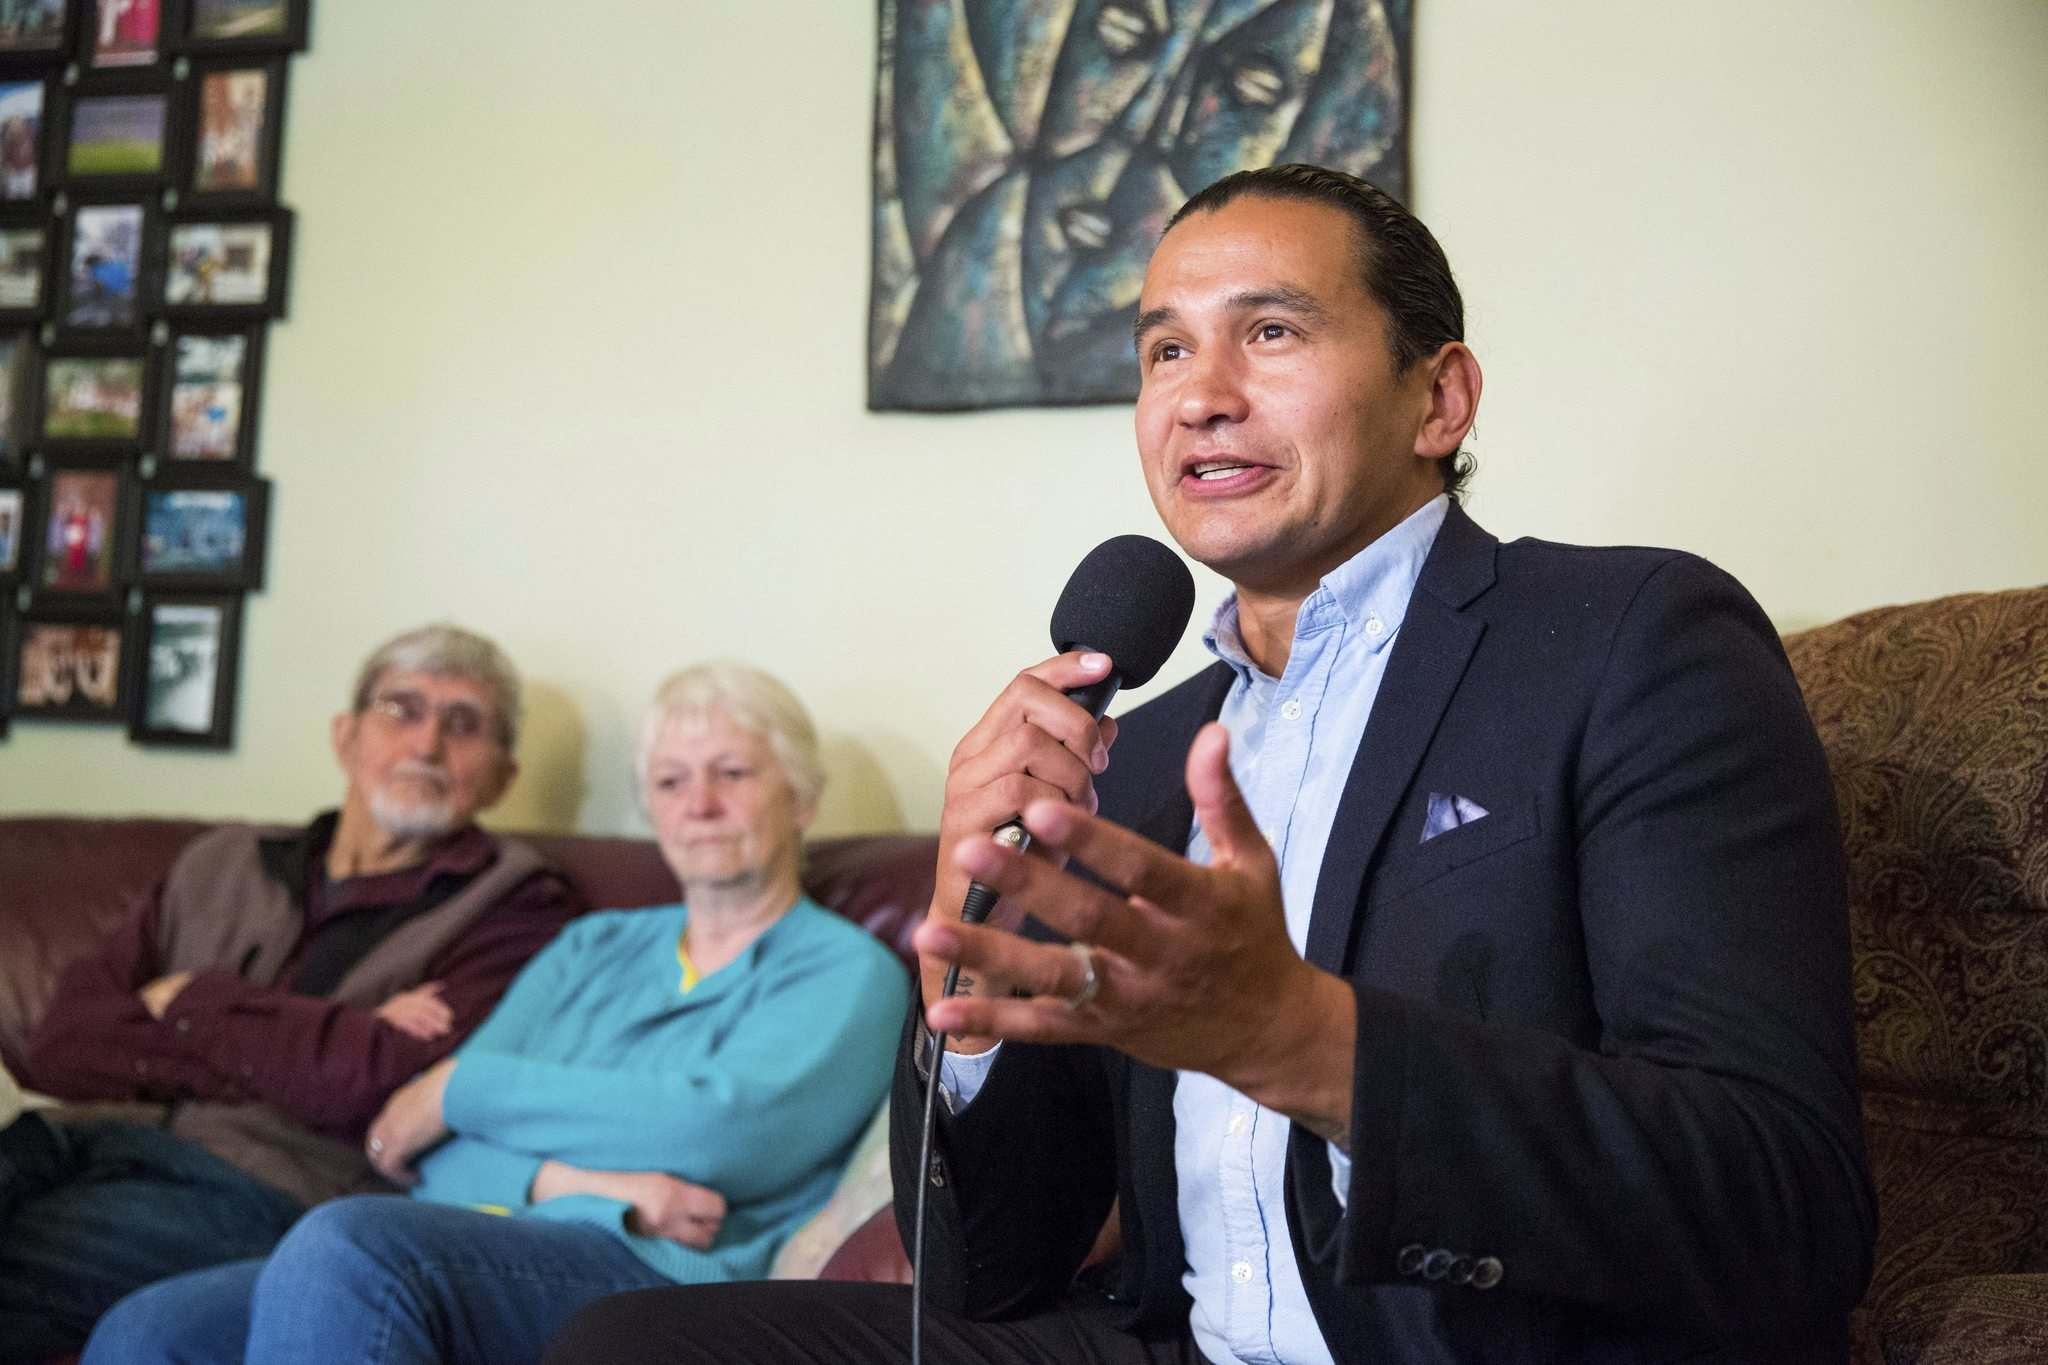 NDP leader Wab Kinew makes a home care announcement with Peter (left) and Esther Hiebert in the couple's home in Winnipeg on Sunday. (Mikaela MacKenzie/ Winnipeg Free Press)